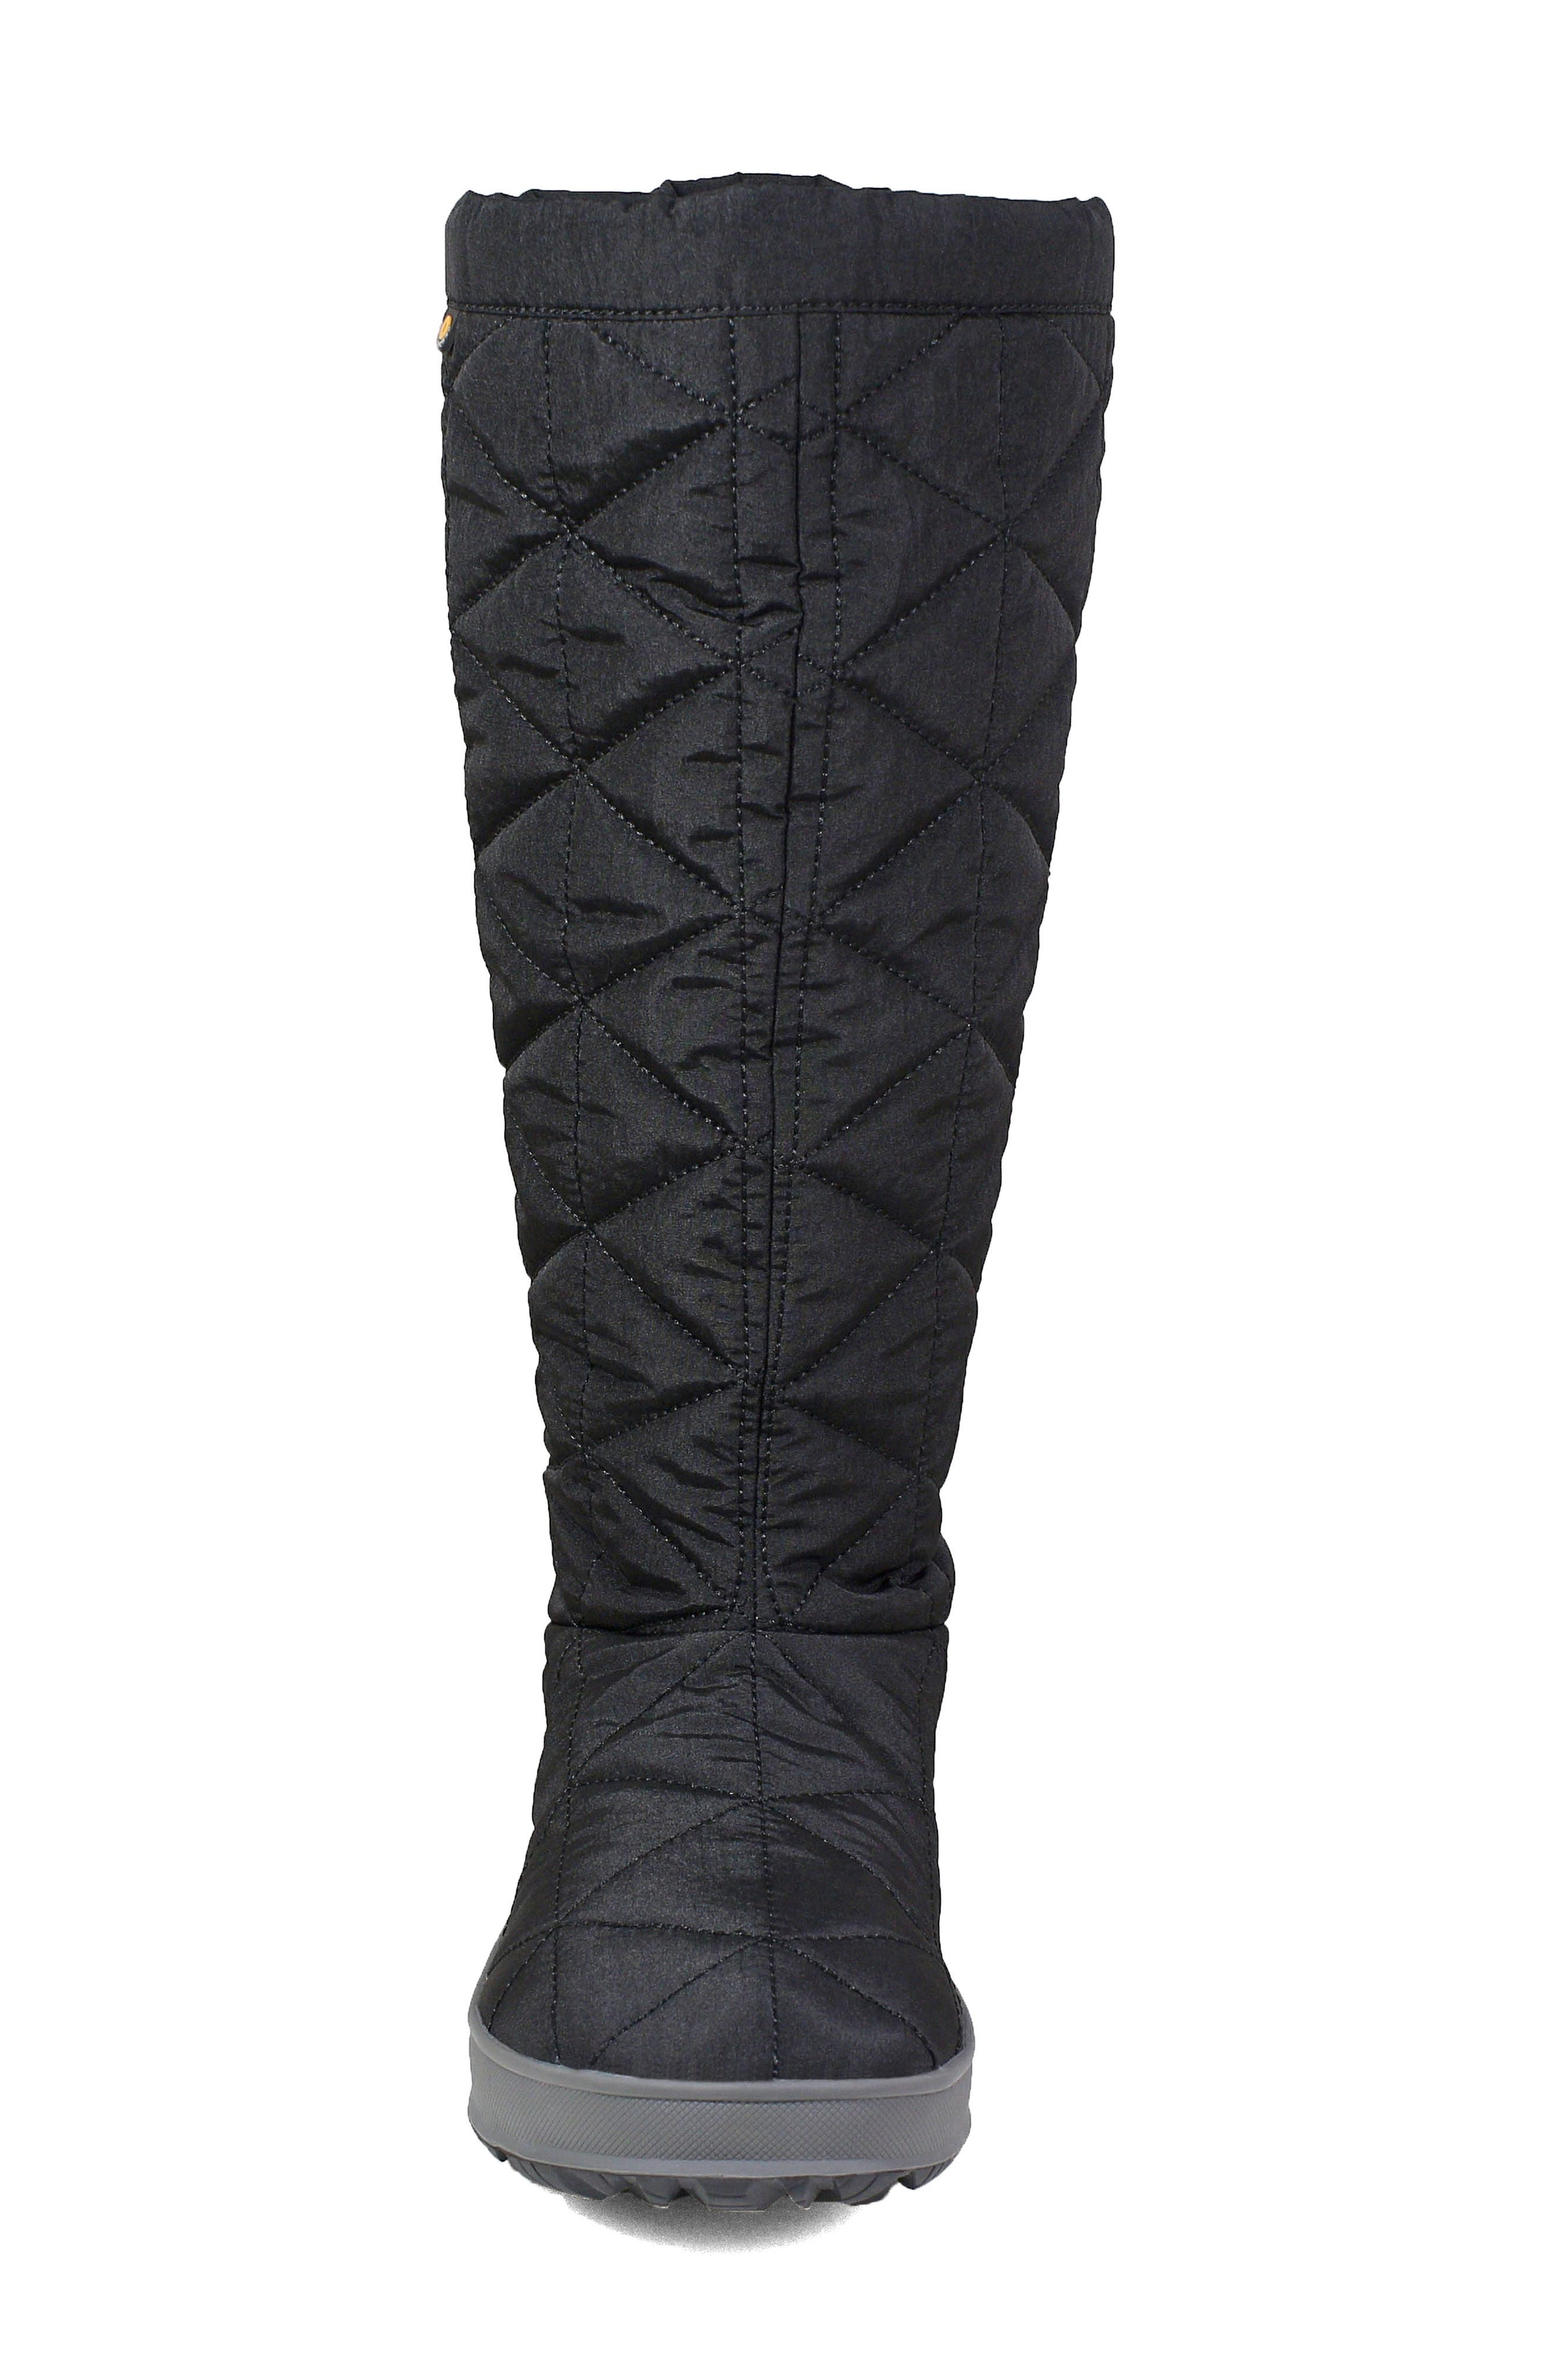 BOGS, Snowday Tall Waterproof Quilted Snow Boot, Alternate thumbnail 4, color, BLACK